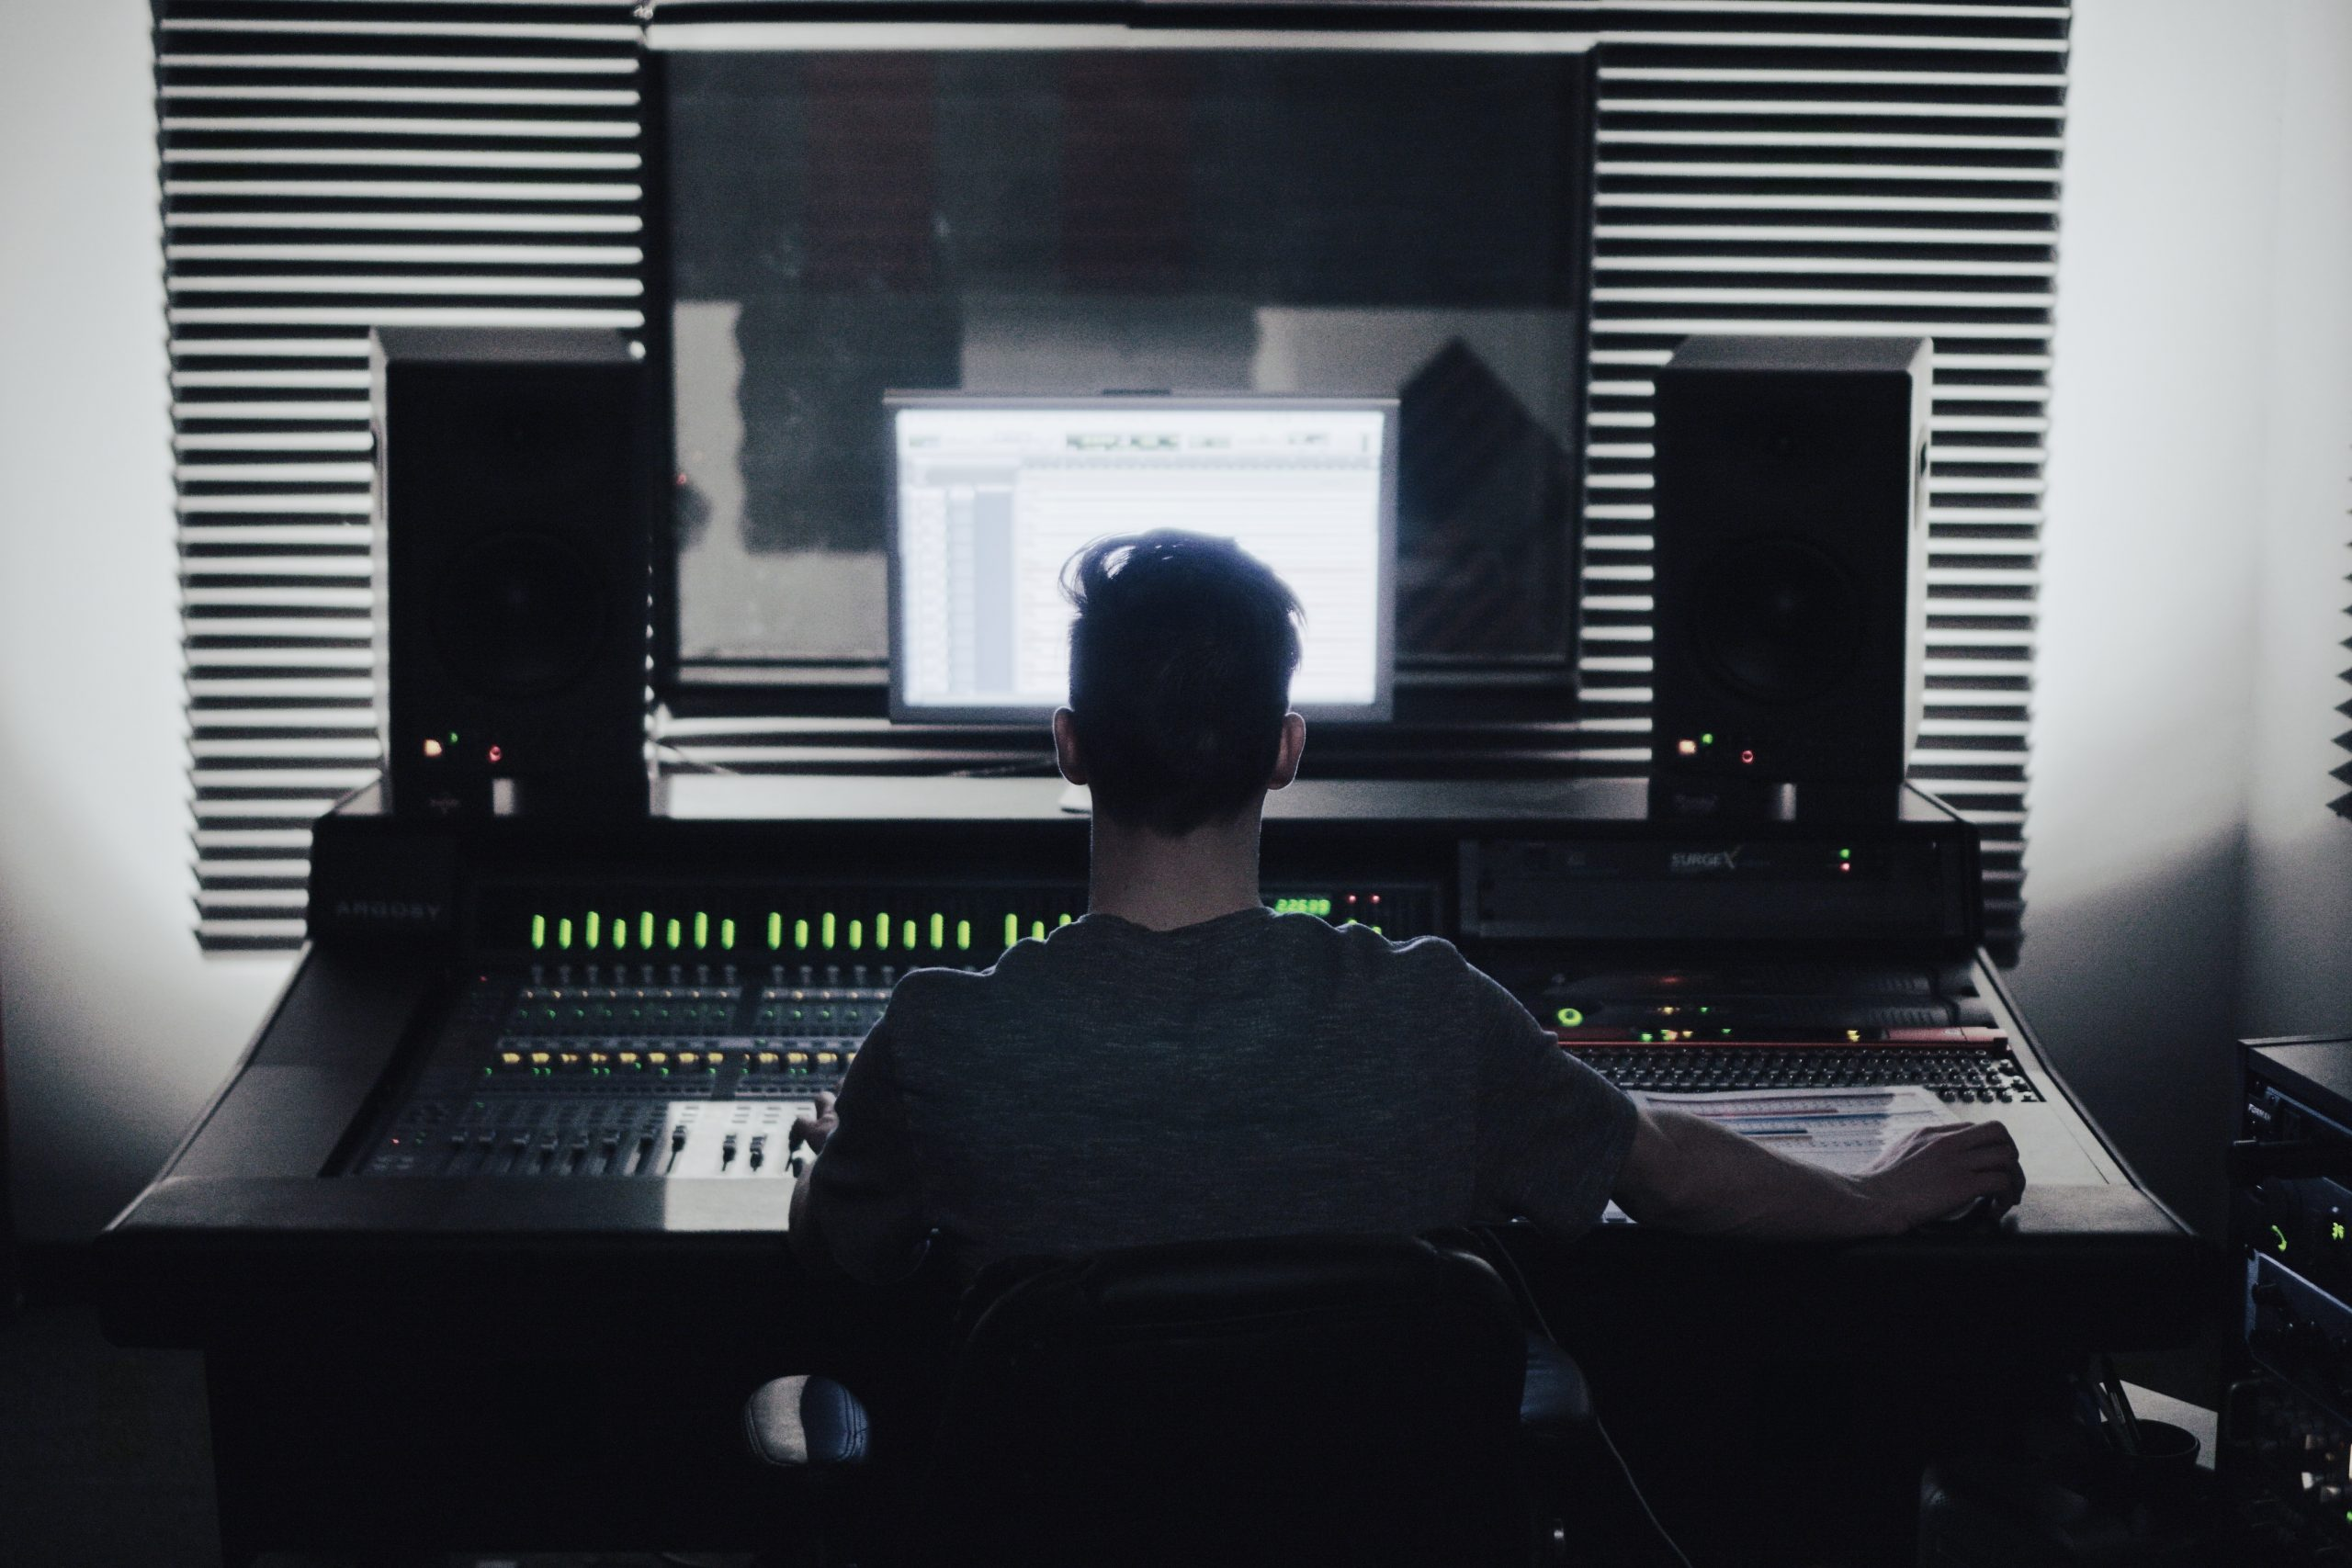 Part 7: Post-Production | So You Want to Make a Fiction (or Any) Podcast?